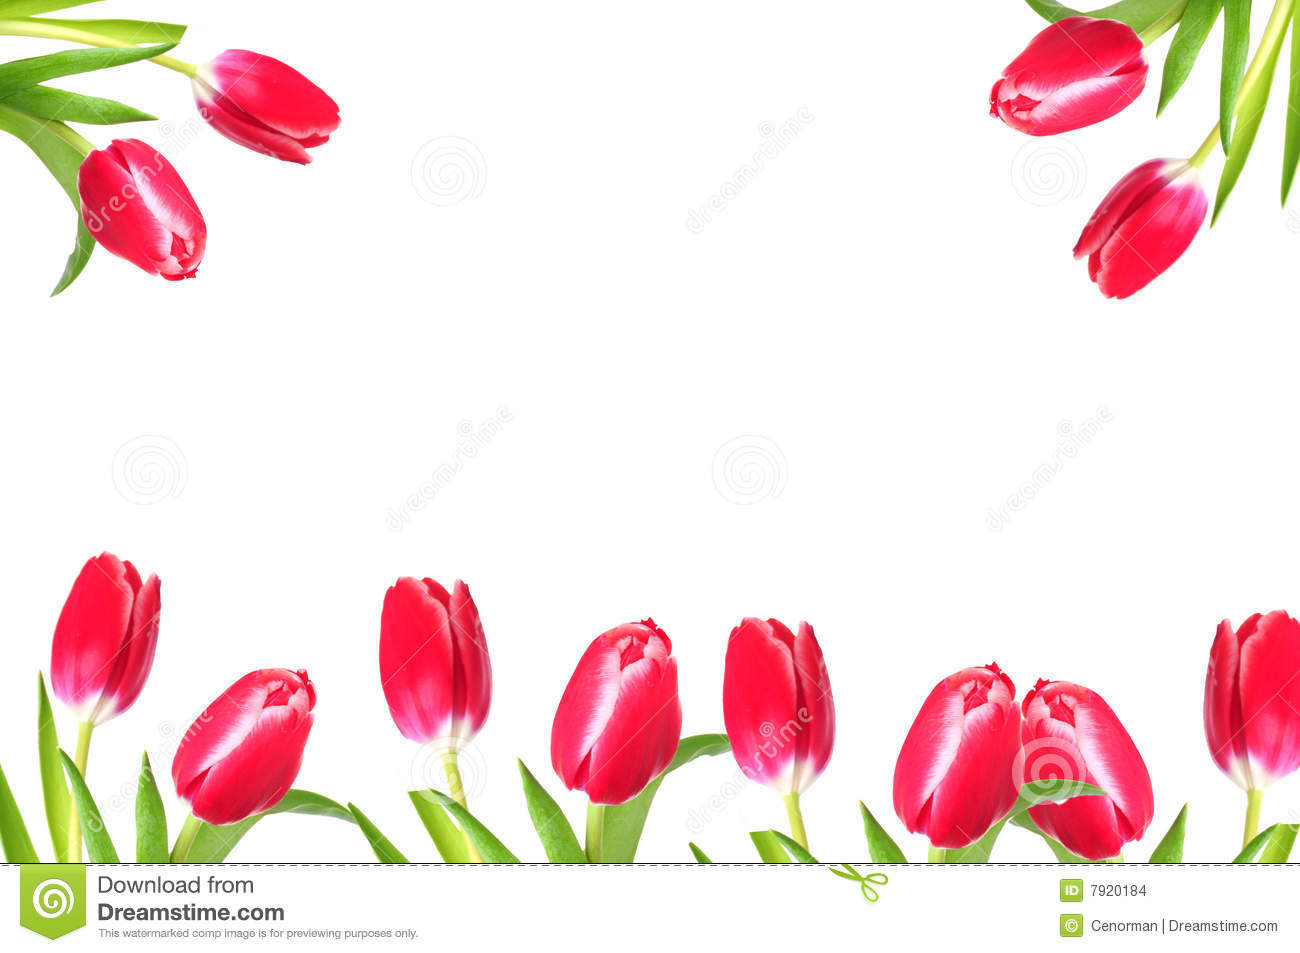 Pretty tulip border stock photo. Image of flower, white ...